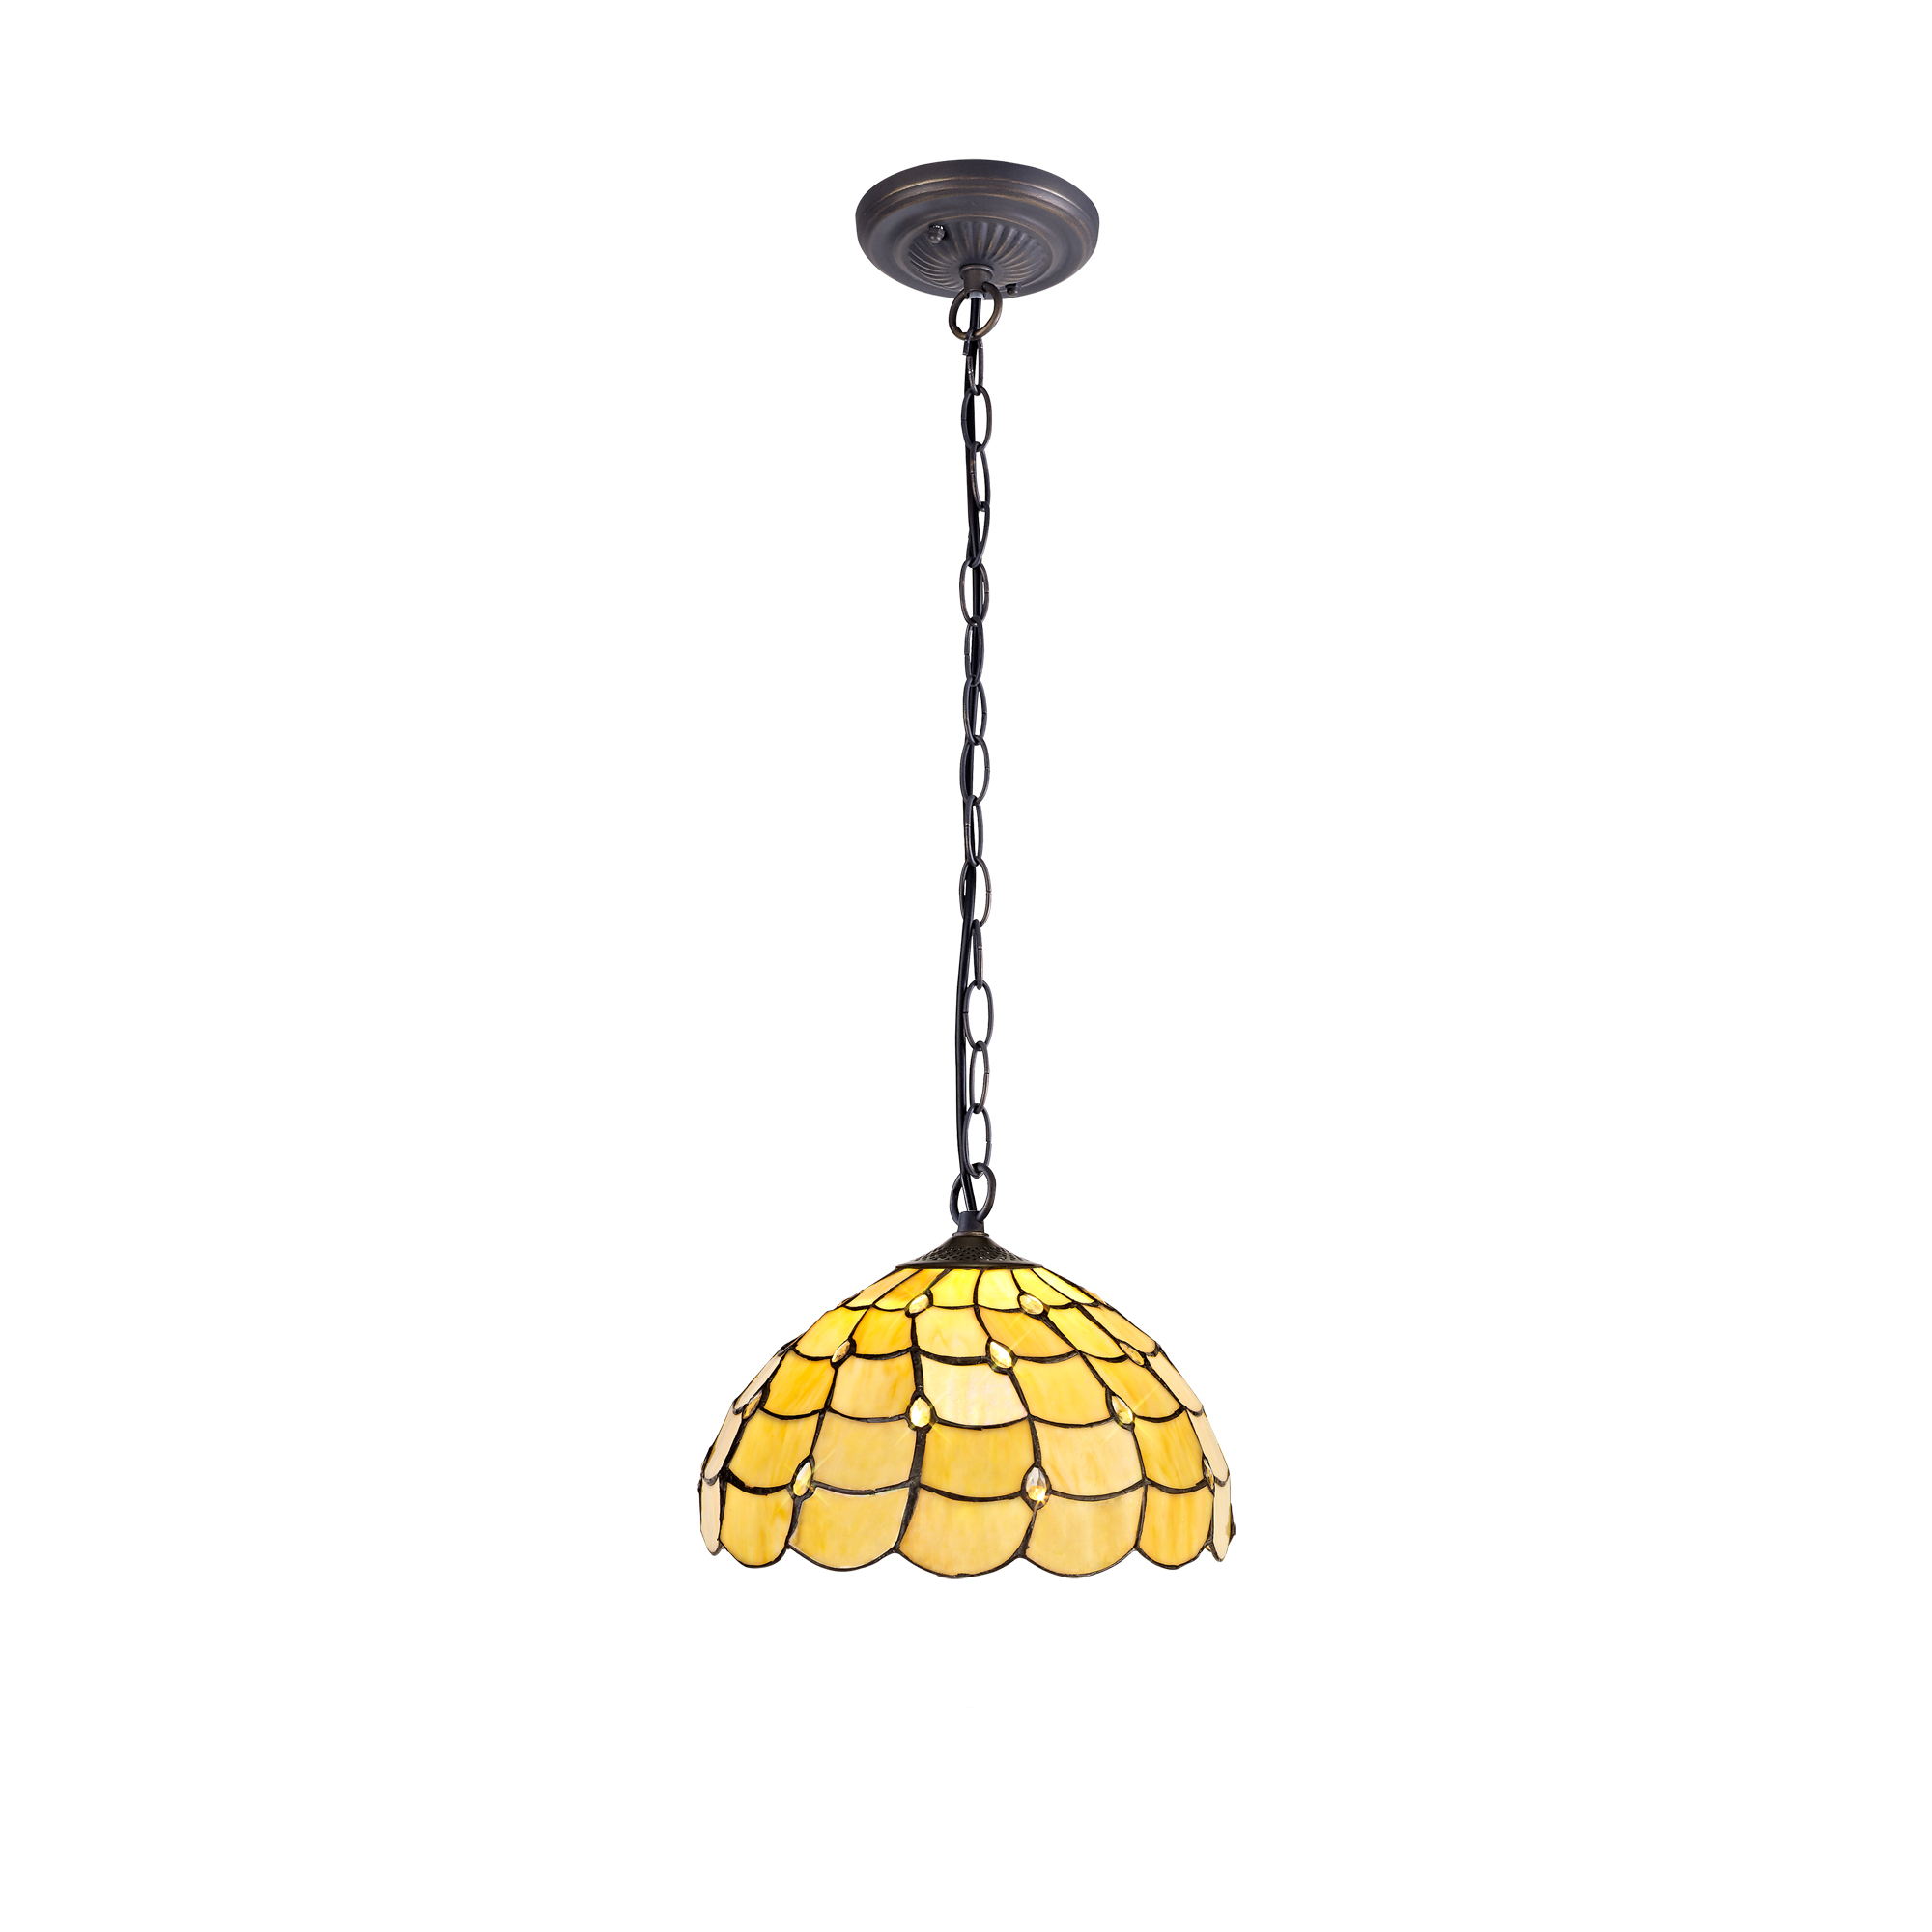 1 Light Downlighter Pendant E27 With 30cm Tiffany Shade, Beige/Clear Crystal/Aged Antique Brass